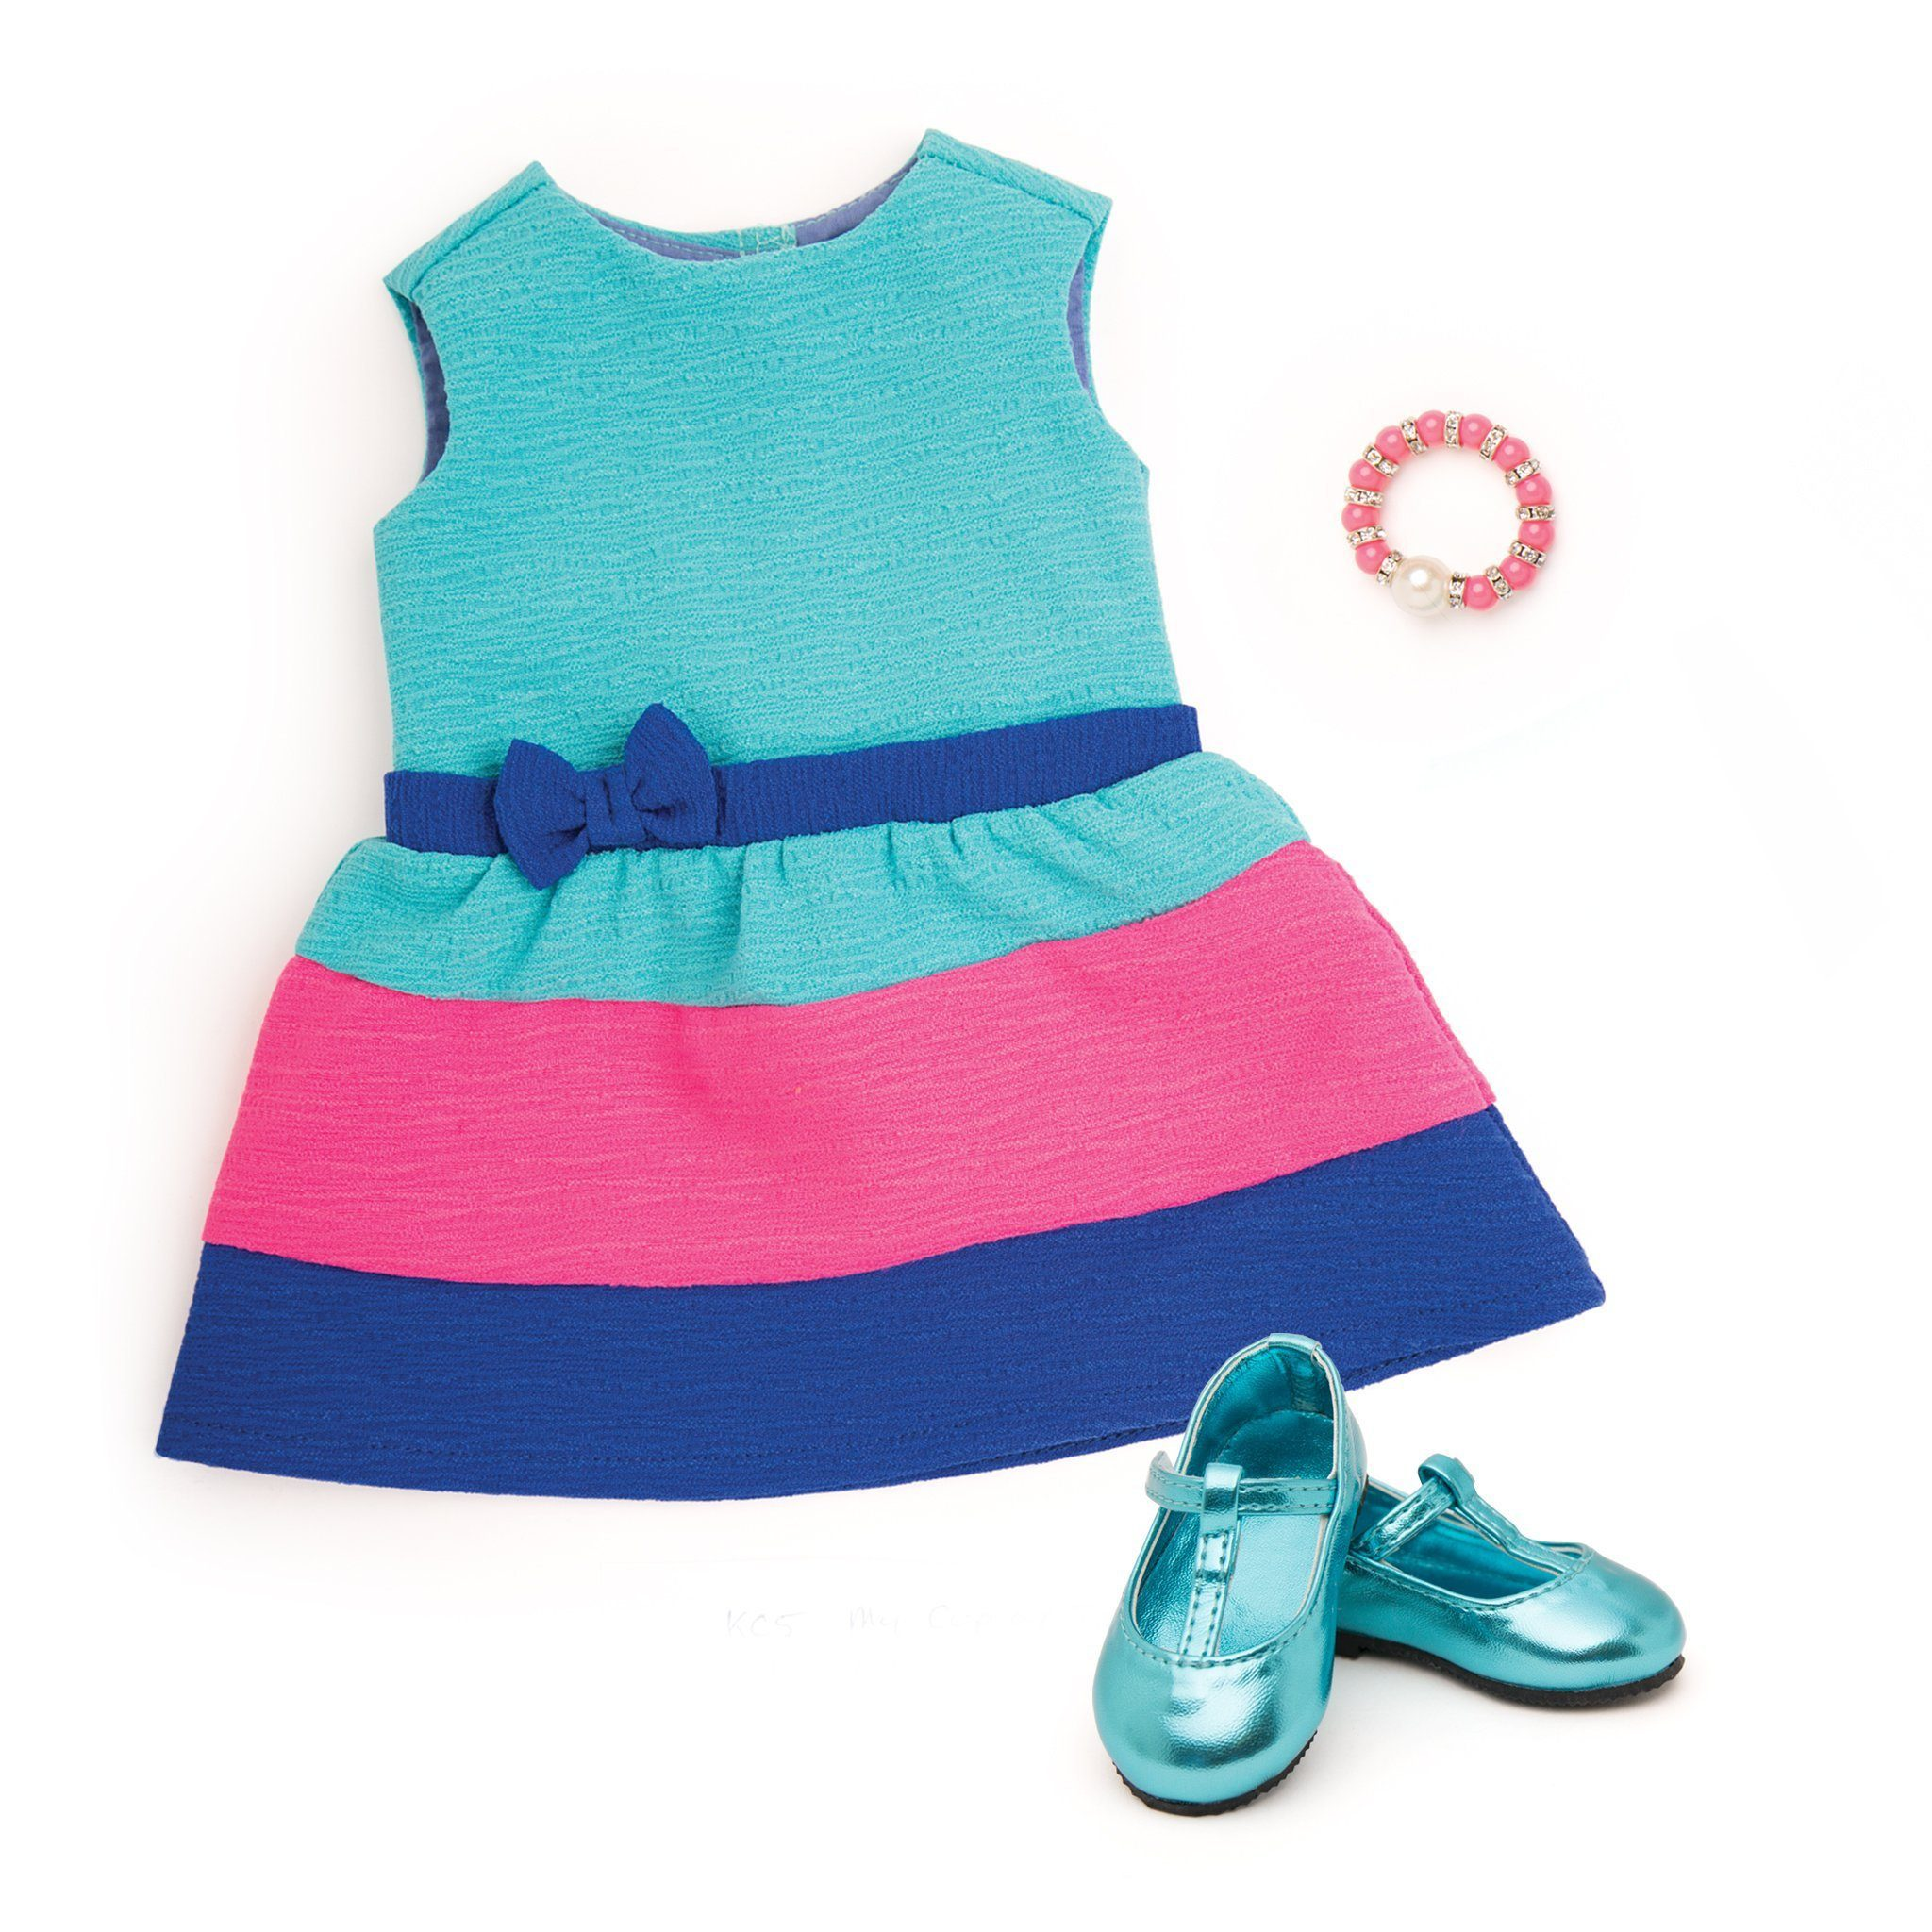 Summer tea party dress with t-strap teal shoes and beaded pink bracelet fits all 18 inch dolls.